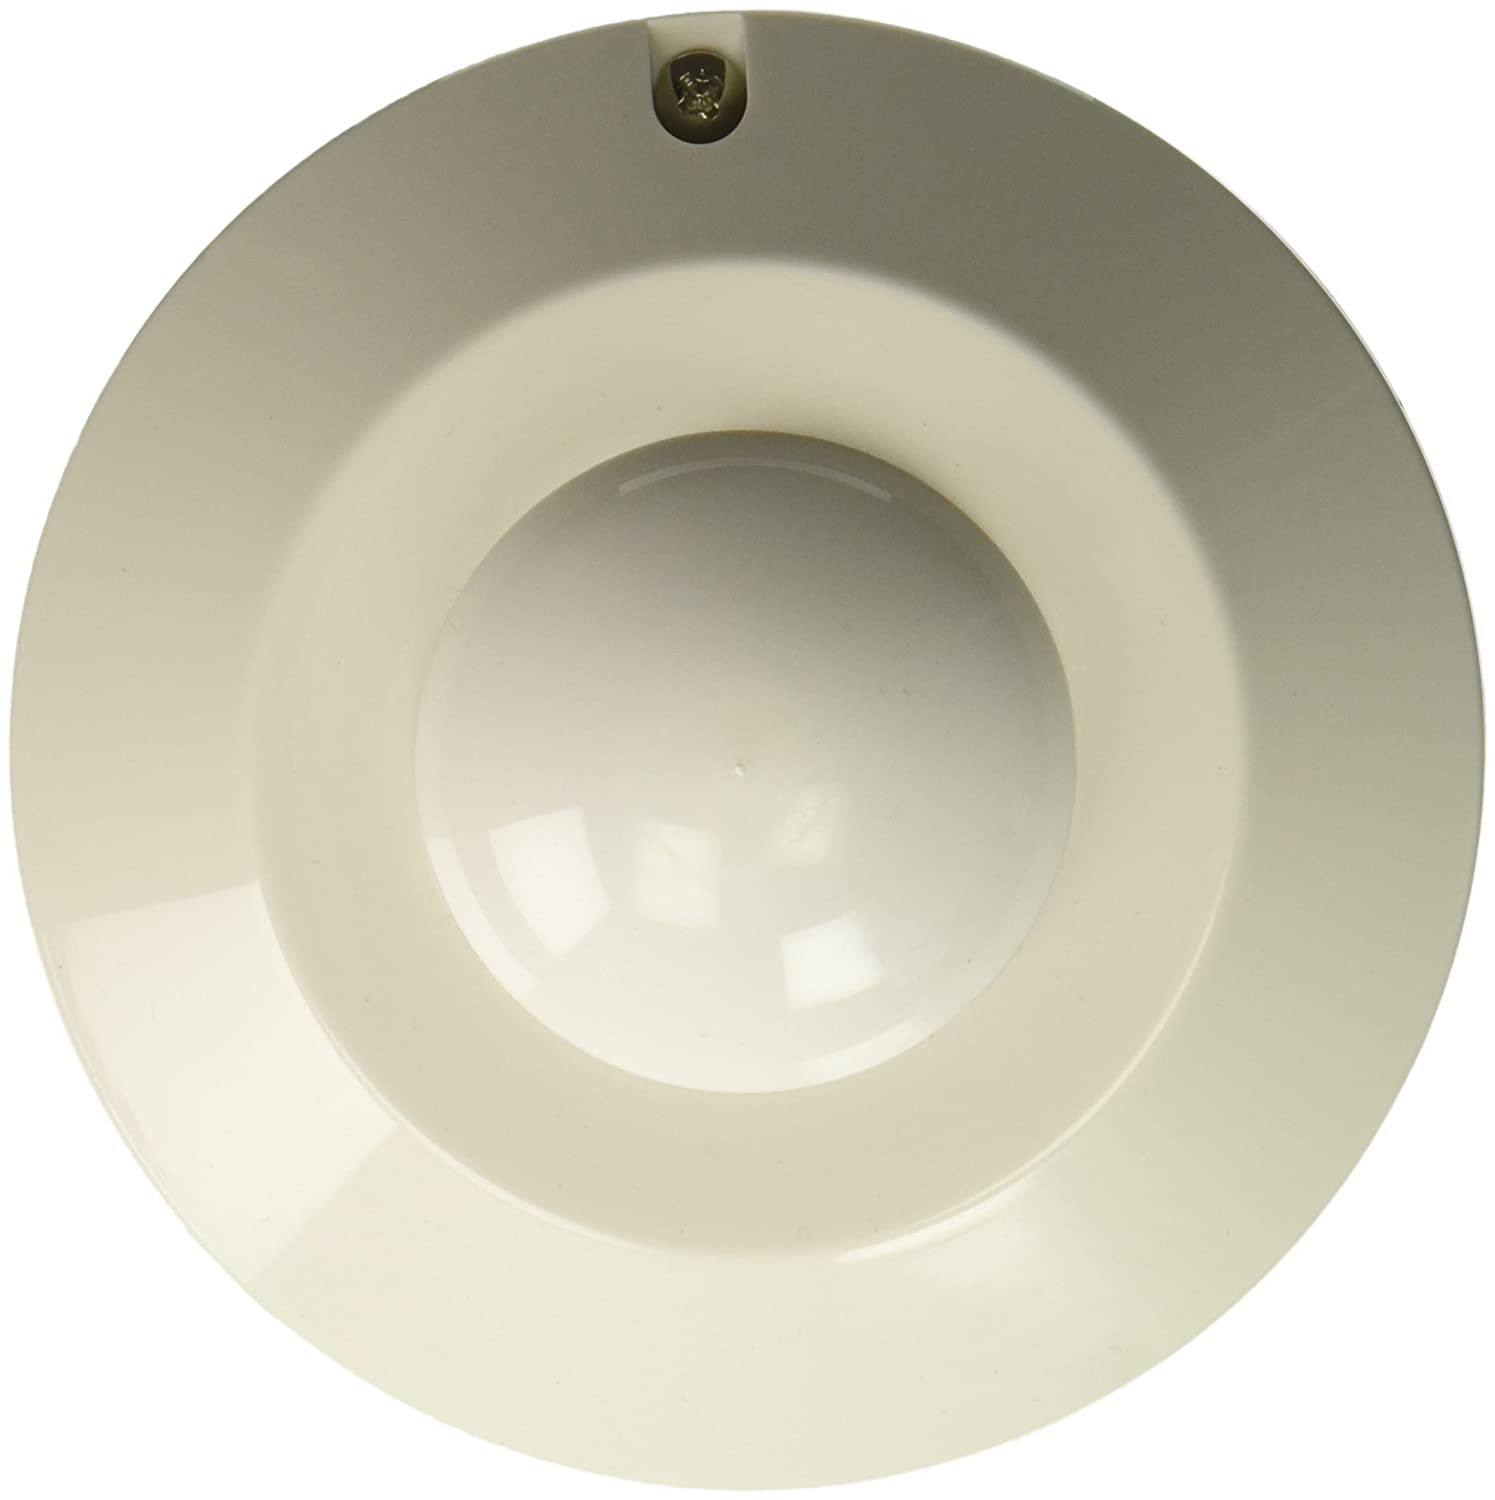 White Peco SA200-001 Ceiling Mounted Occupancy Sensor with 360-Degree Protection Pattern